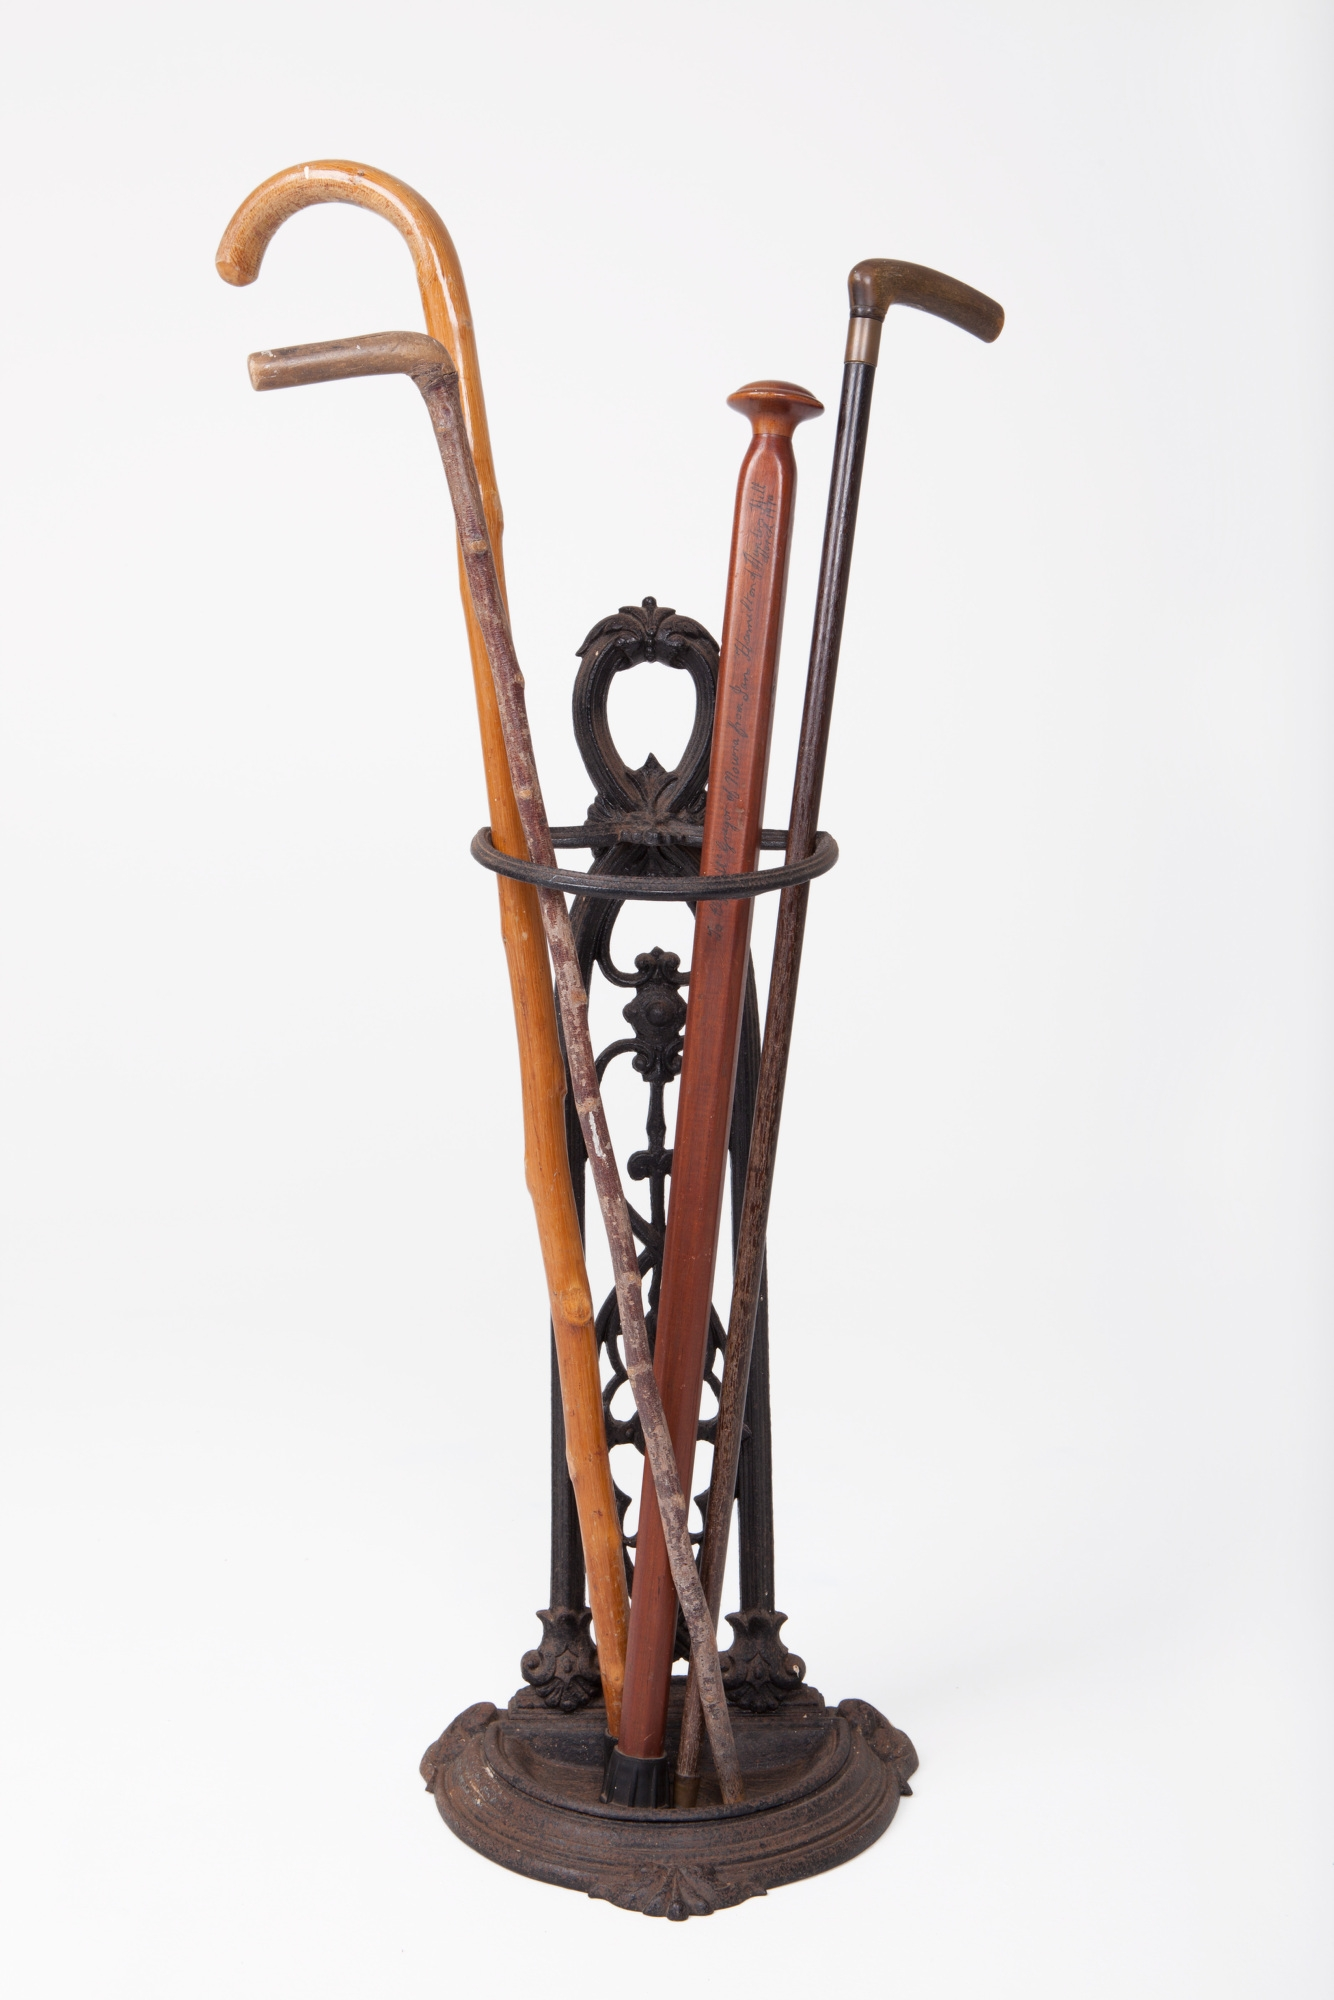 Four wooden walking sticks in cast iron umbrella stand.